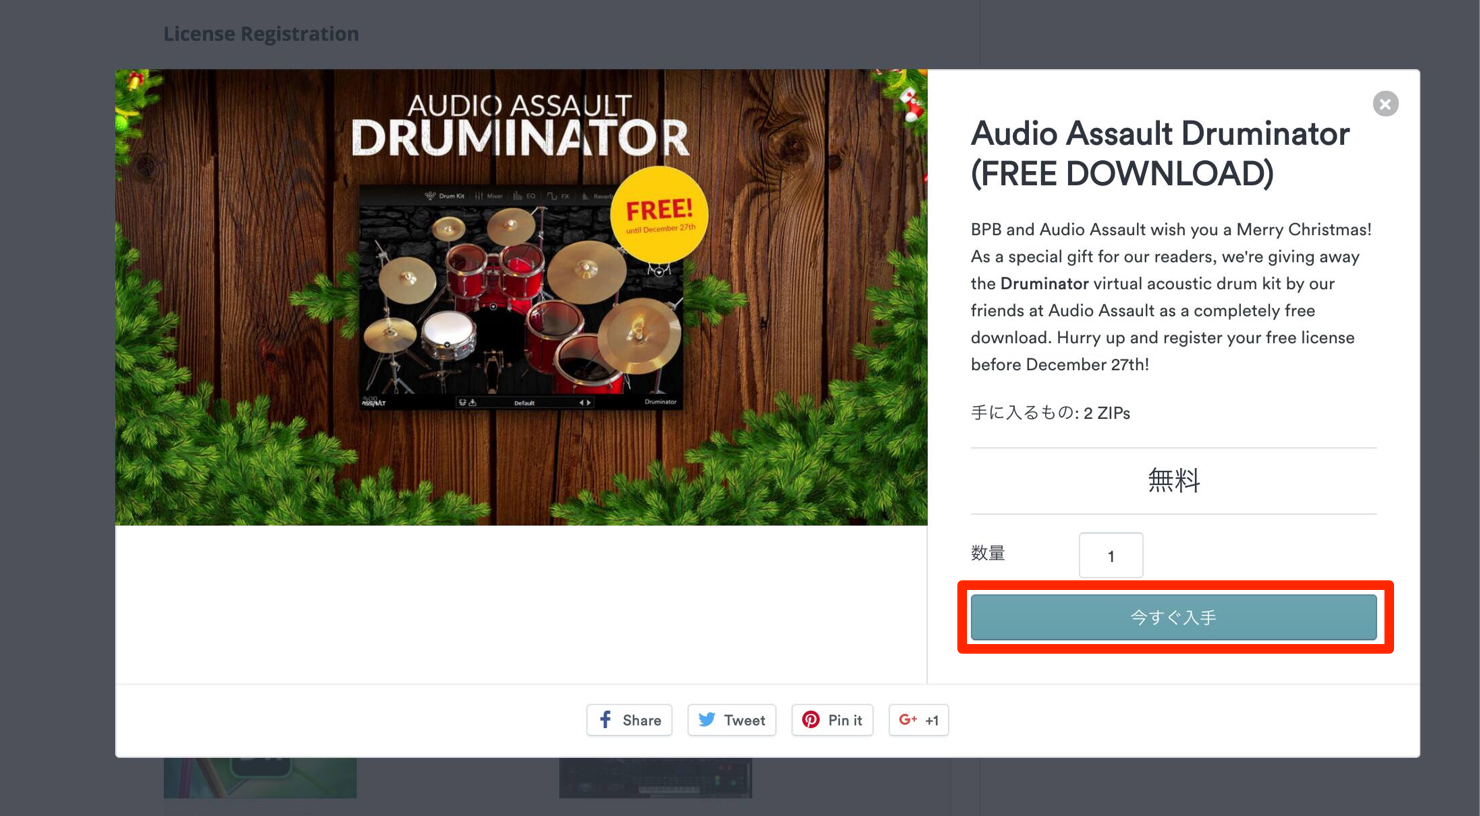 BPB-AUDIO-ASSAULT-DRUMINATOR-FREE-download-2